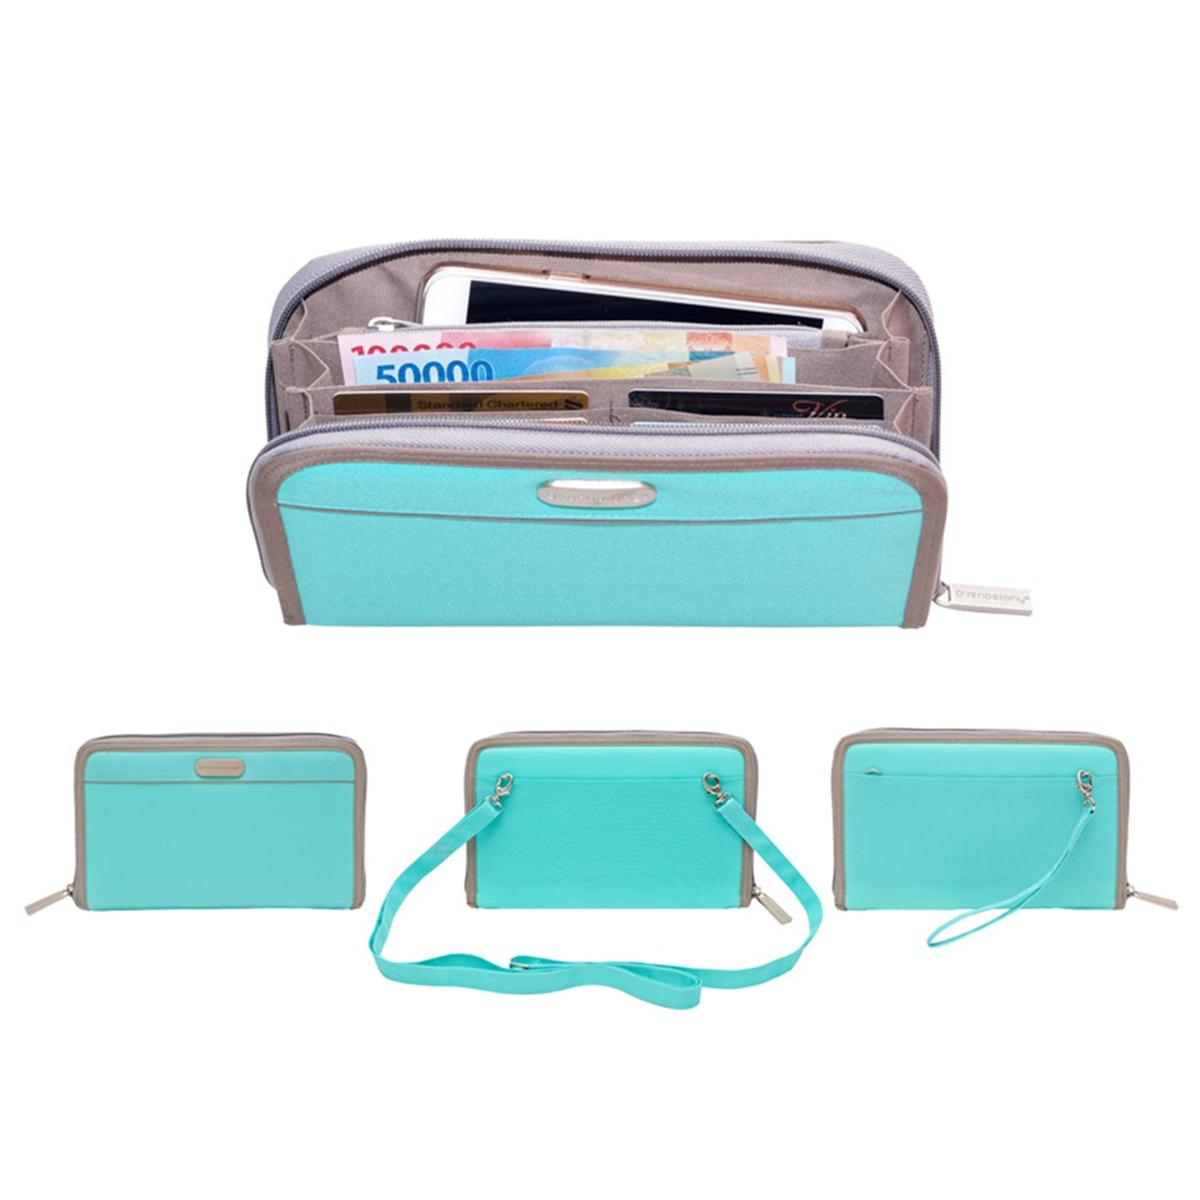 Promo D Renbellony Smartphone Organizer Turquoise Green Dompet Hp Dompet Wanita Handphone Pouch Organizer Murah